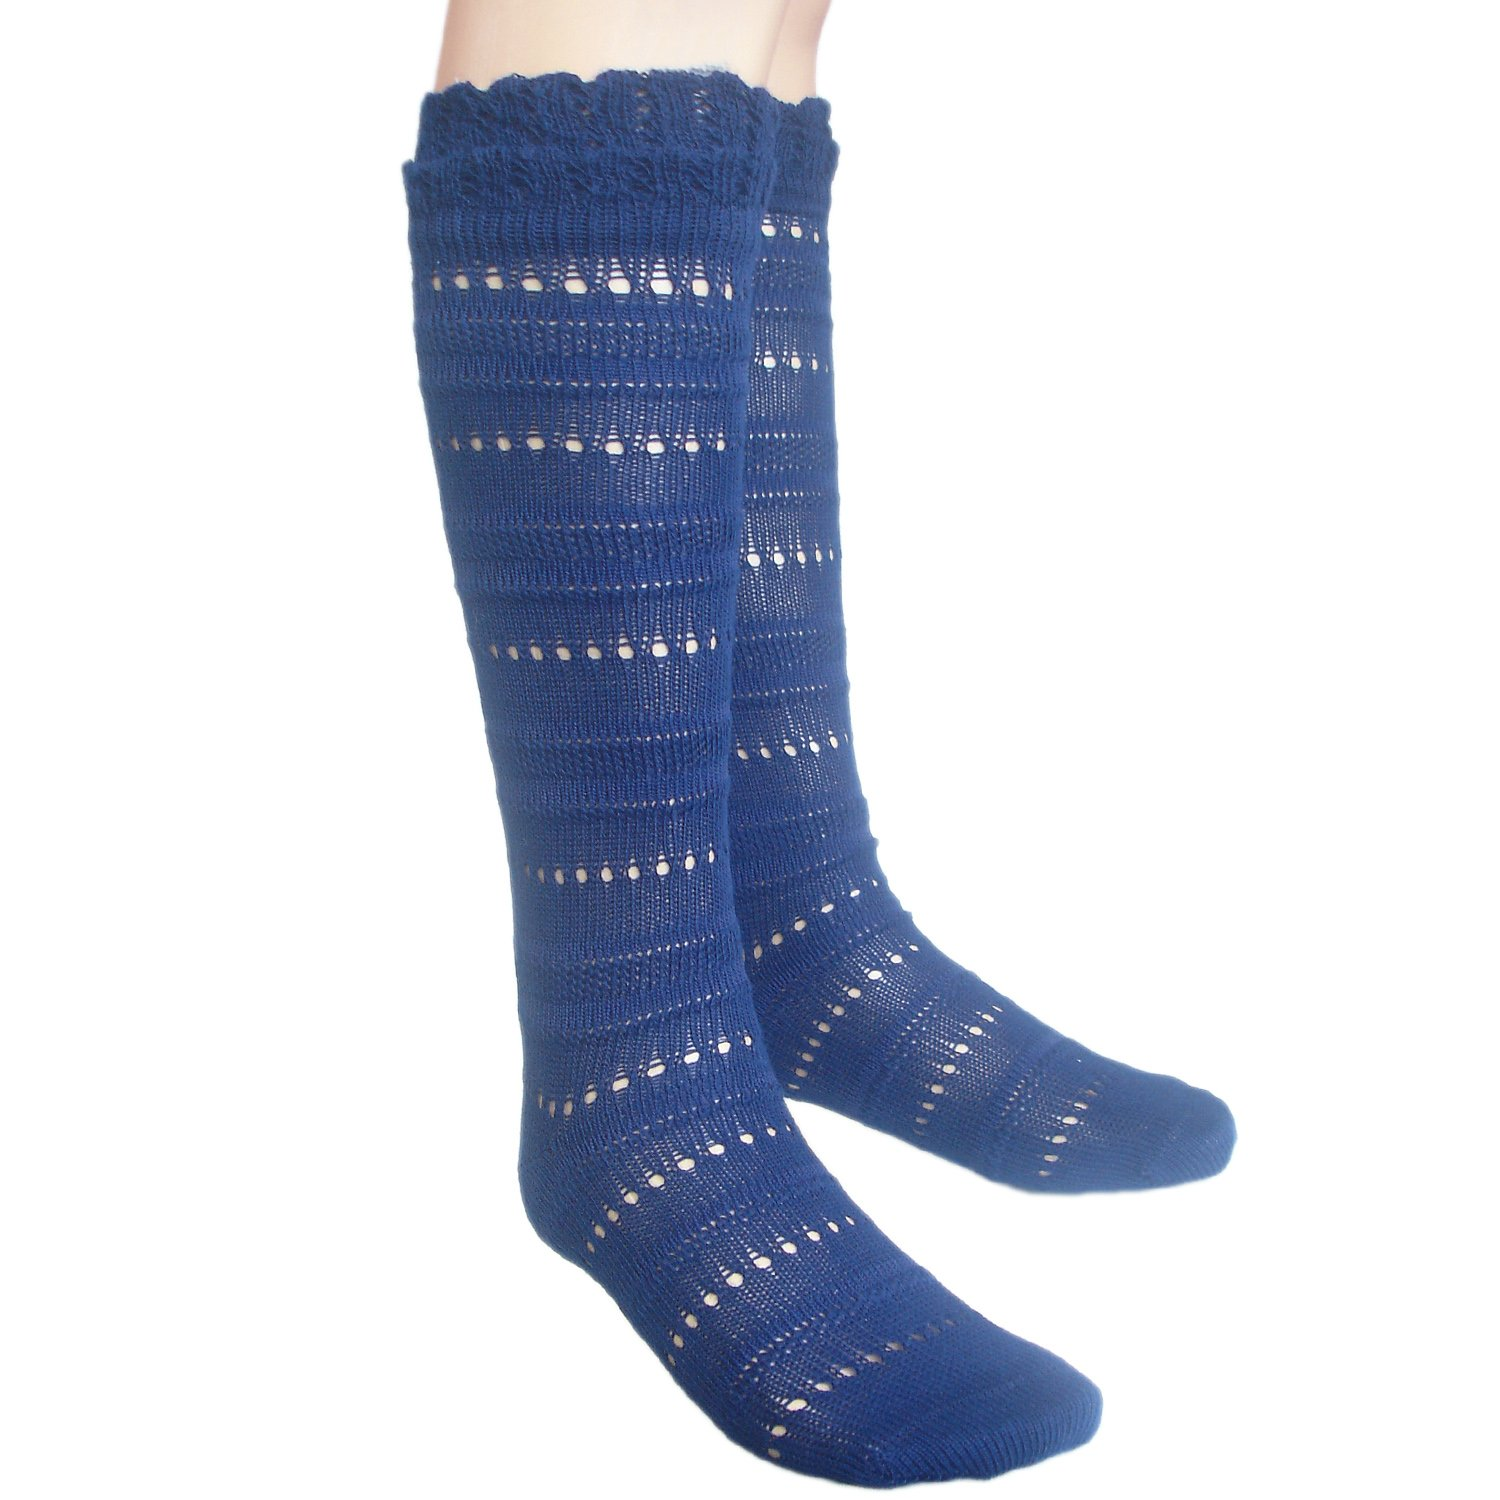 Girls seamless knee high Pointelle socks with soft cuff for sensitive feet